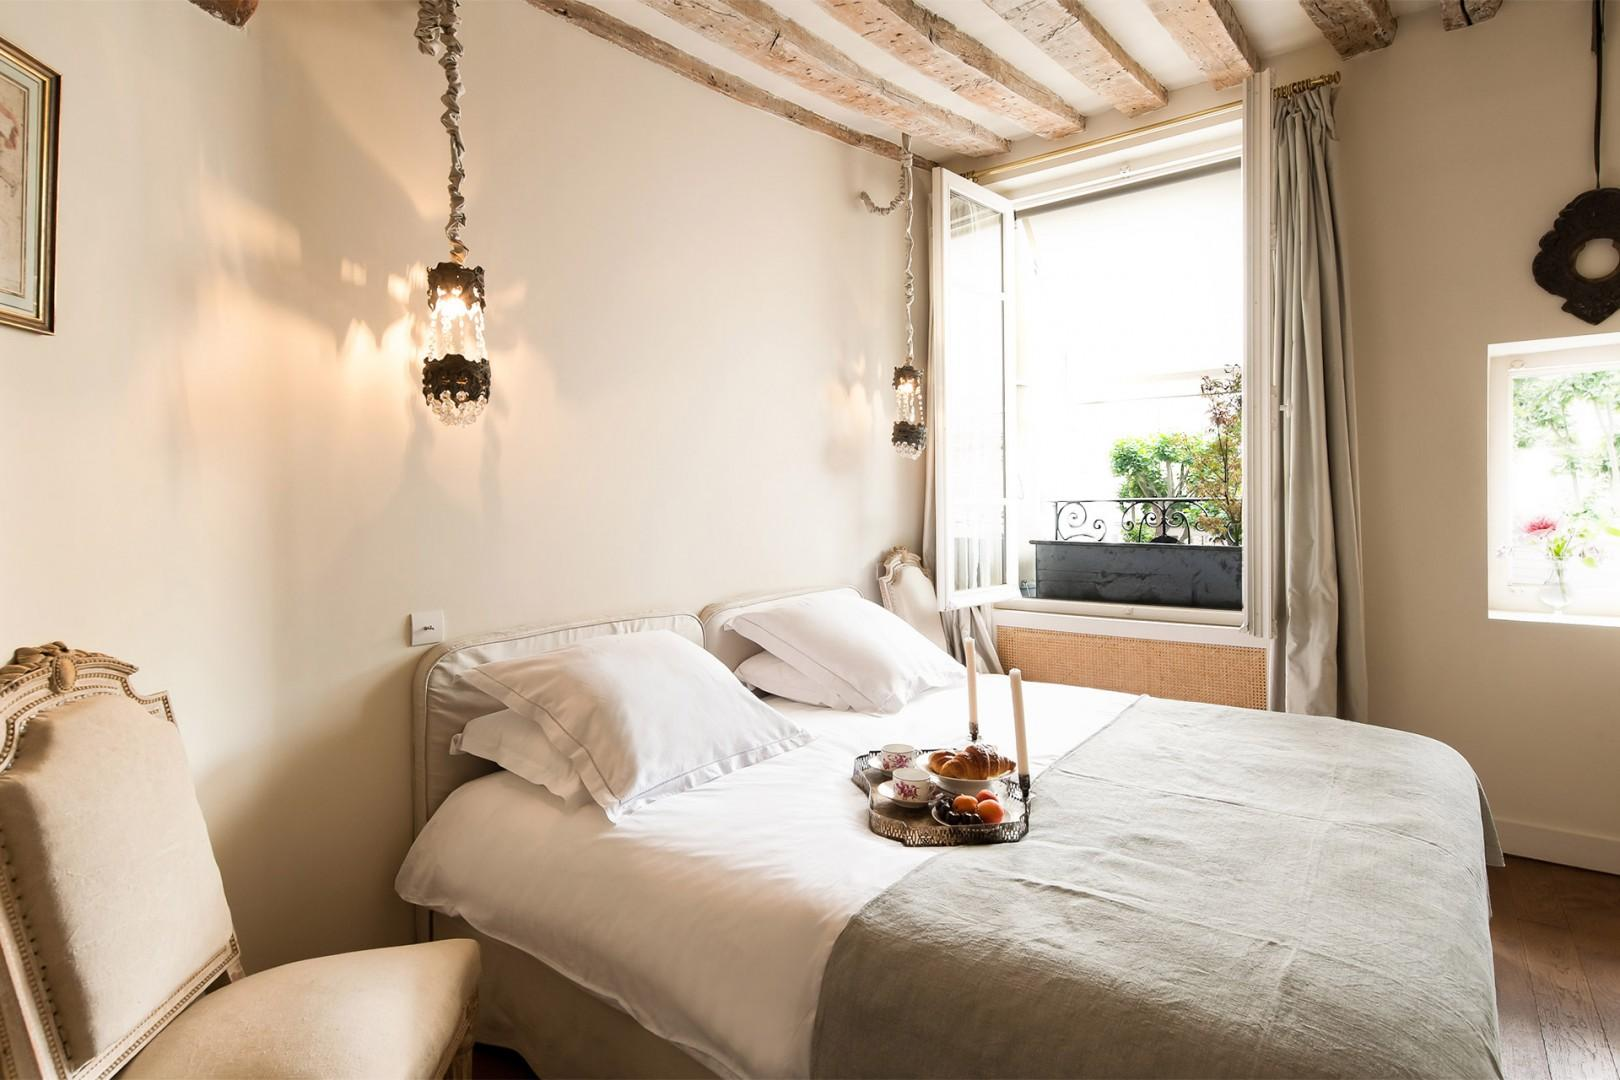 Relax in the cozy bedroom with a comfortable bed and bathroom.